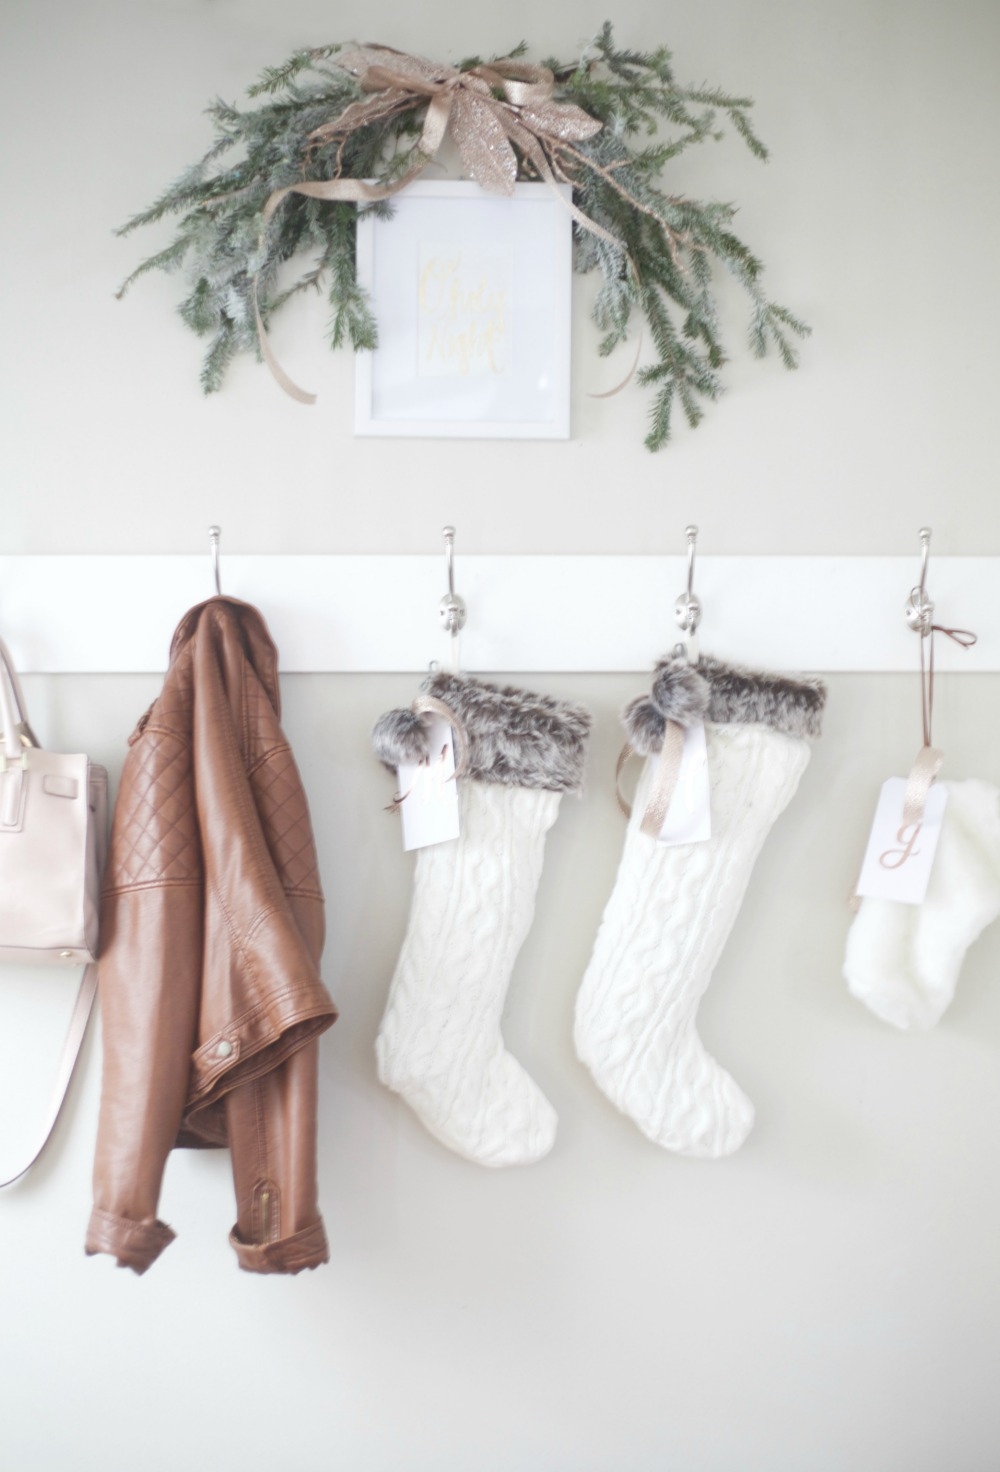 Rose Gold and White Stockings | Rose Gold Christmas Decorations | Parties for Pennies